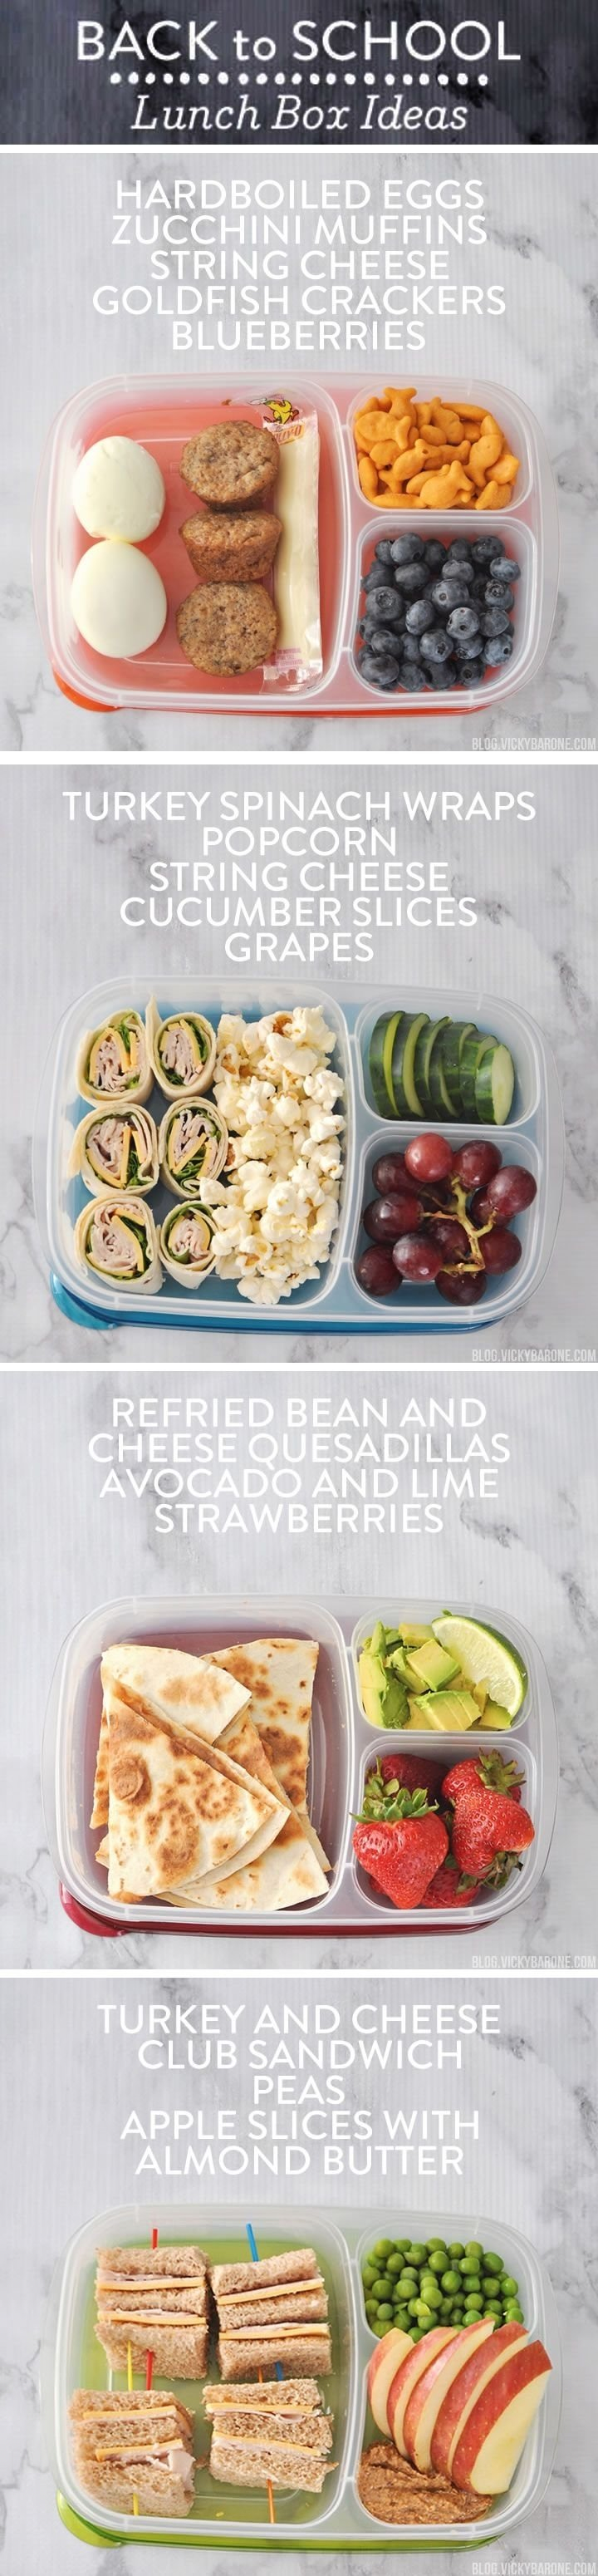 10 Stylish Food Day Ideas For Work 37 best lunch box ideas images on pinterest lunches health foods 4 2020